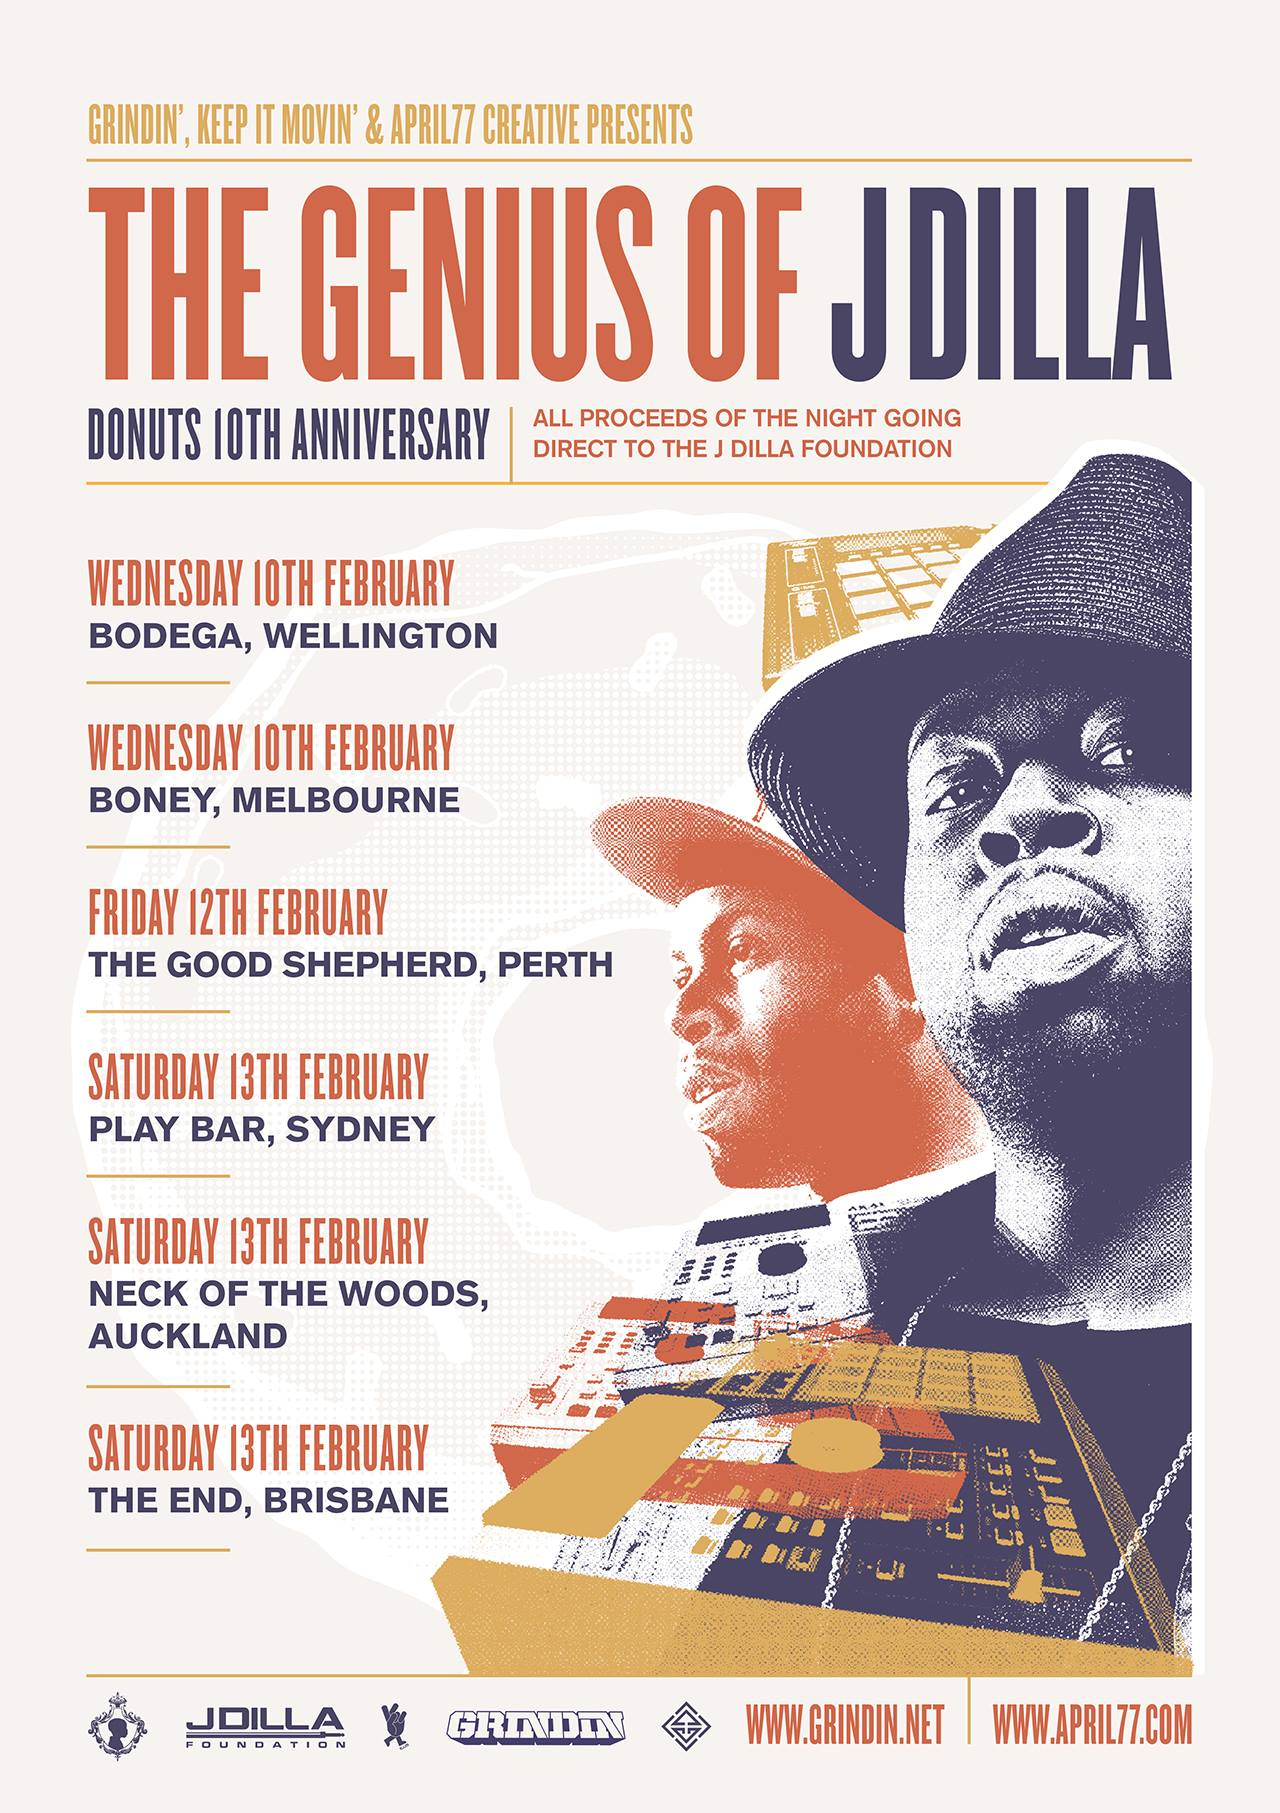 THE GENIUS OF J DILLA 2016